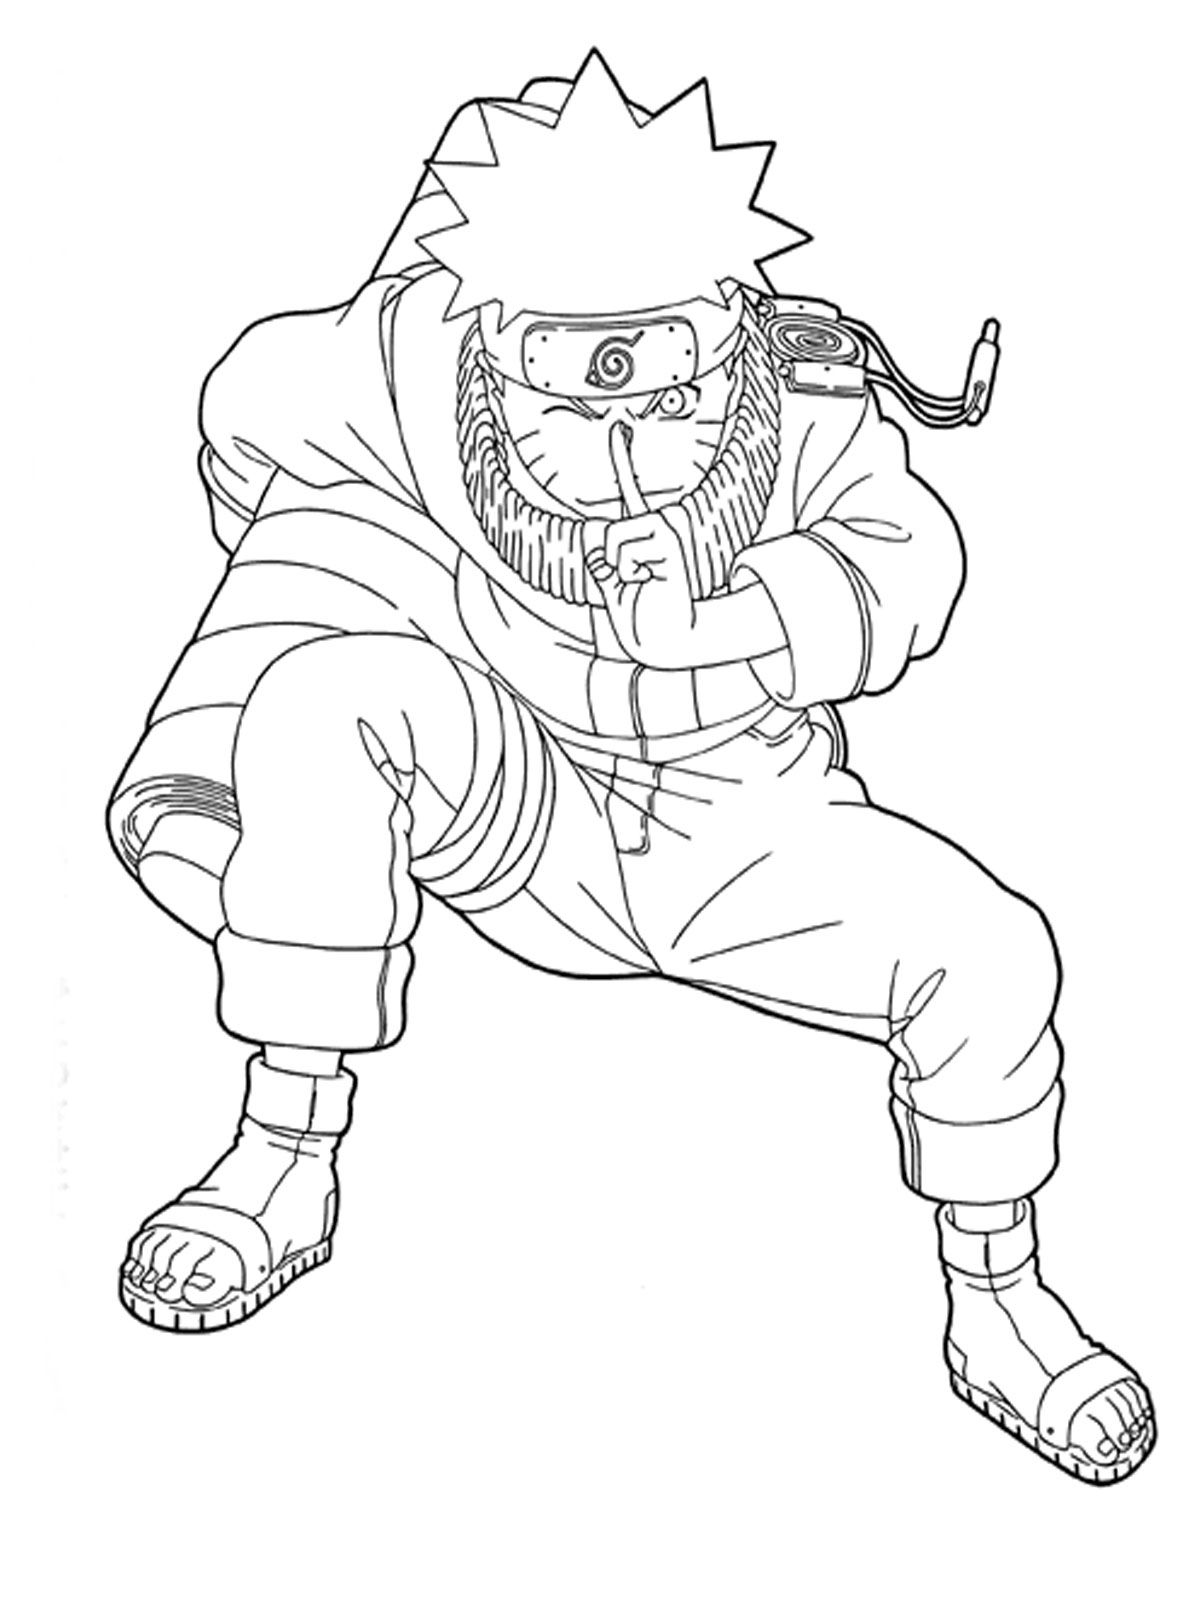 naruto coloring pages printable realistic coloring pages - Coloring Pages People Realistic